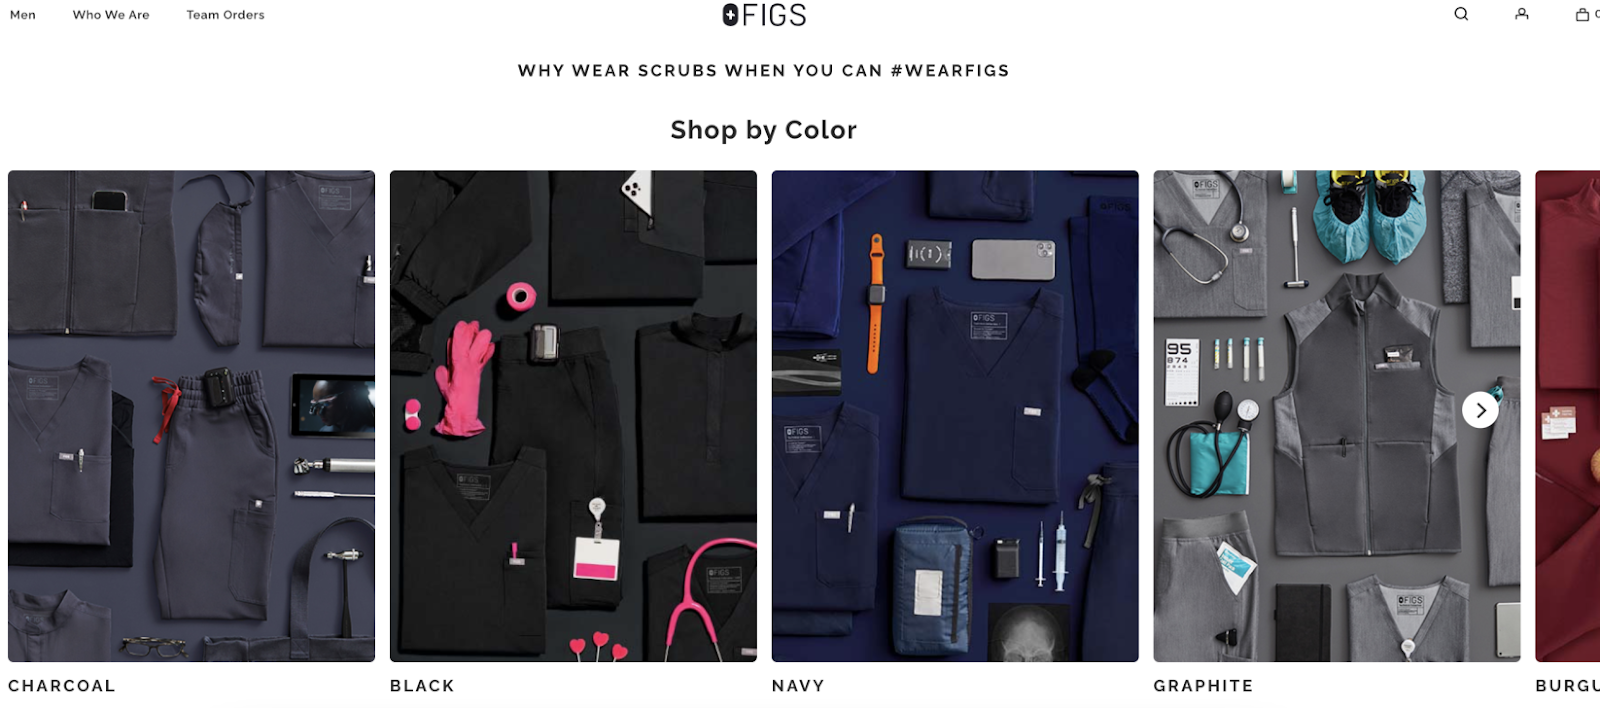 figs shopify headless commerce